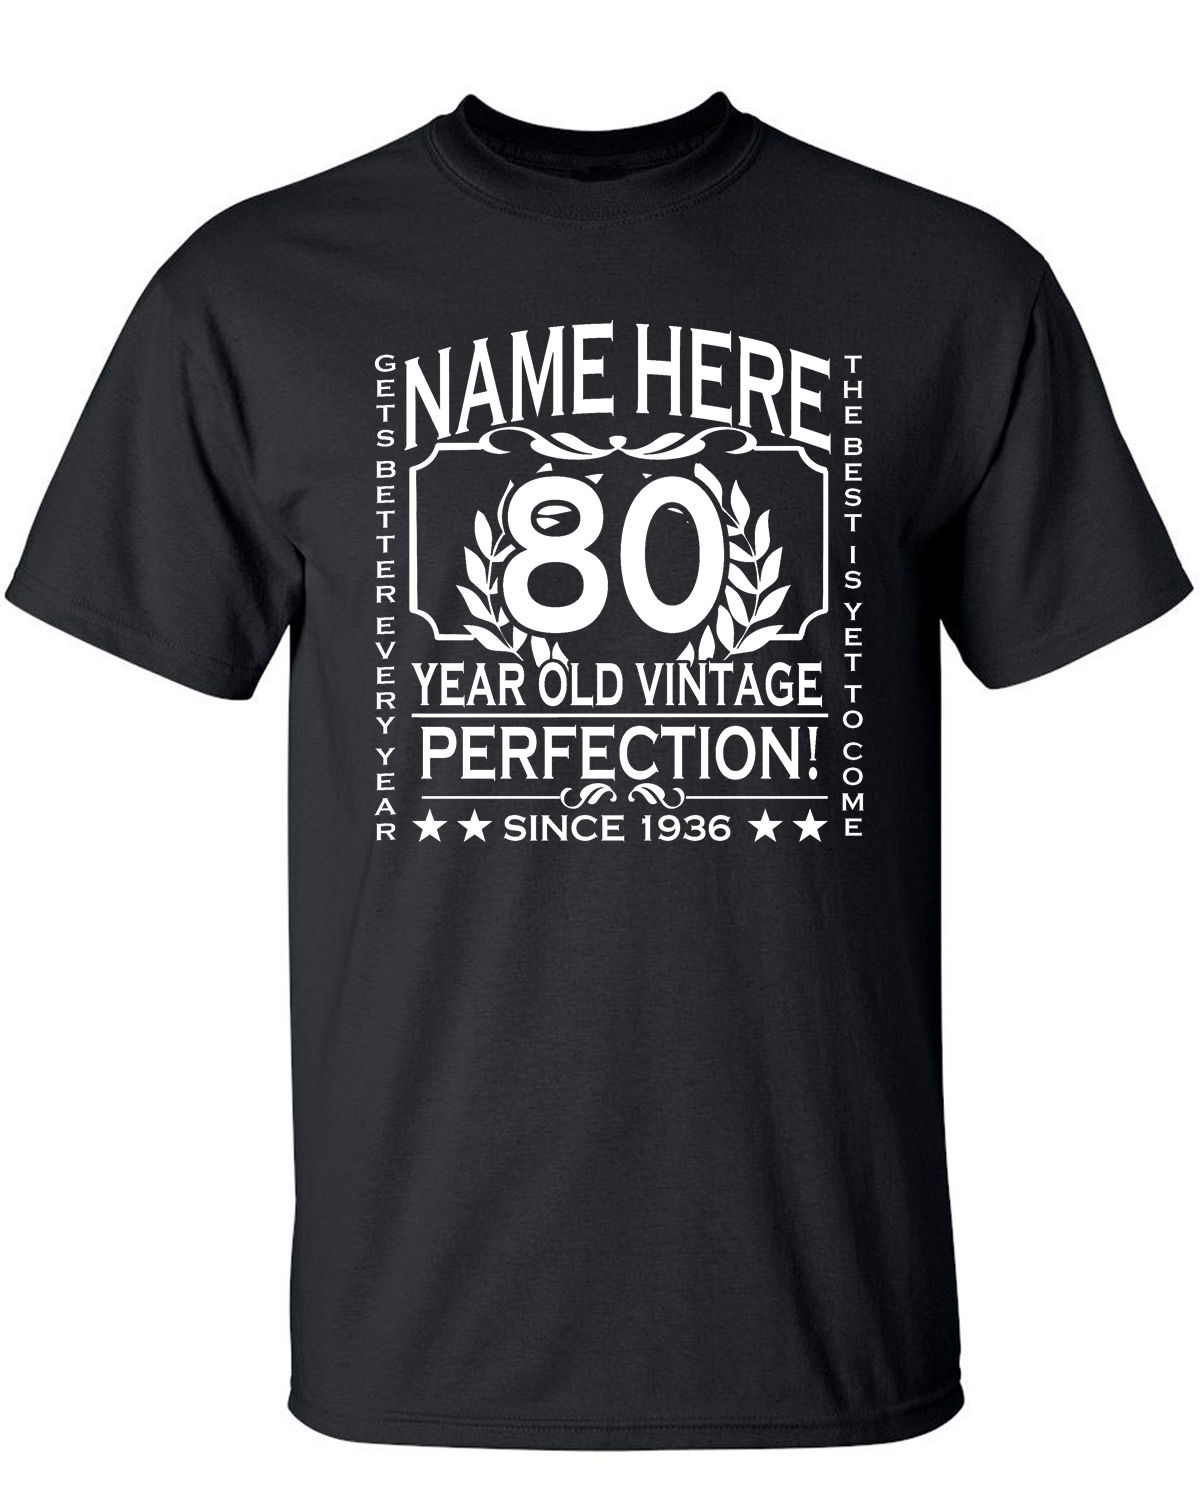 Mens 80th Birthday T-Shirt Personalised Add Name,Short Sleeves Cotton Fashion T Shirt Free Shipping